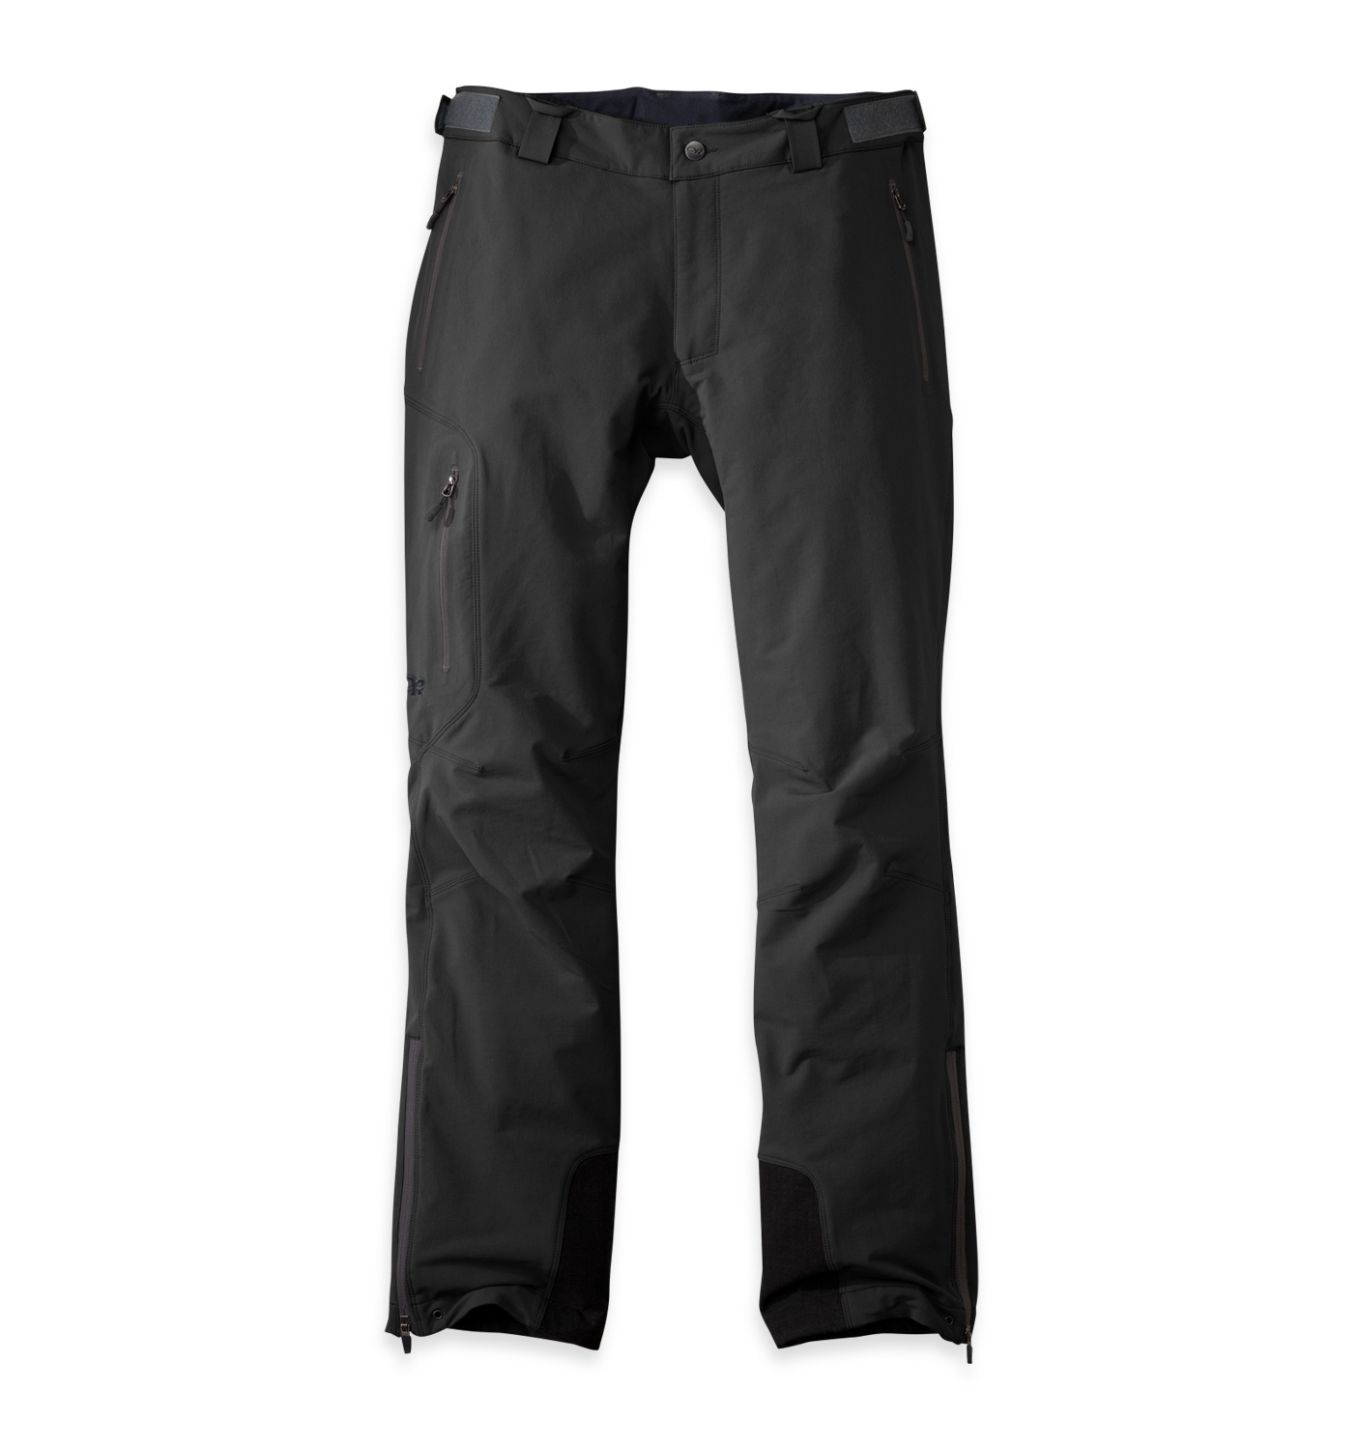 Outdoor Research Men's Cirque Pants black-30